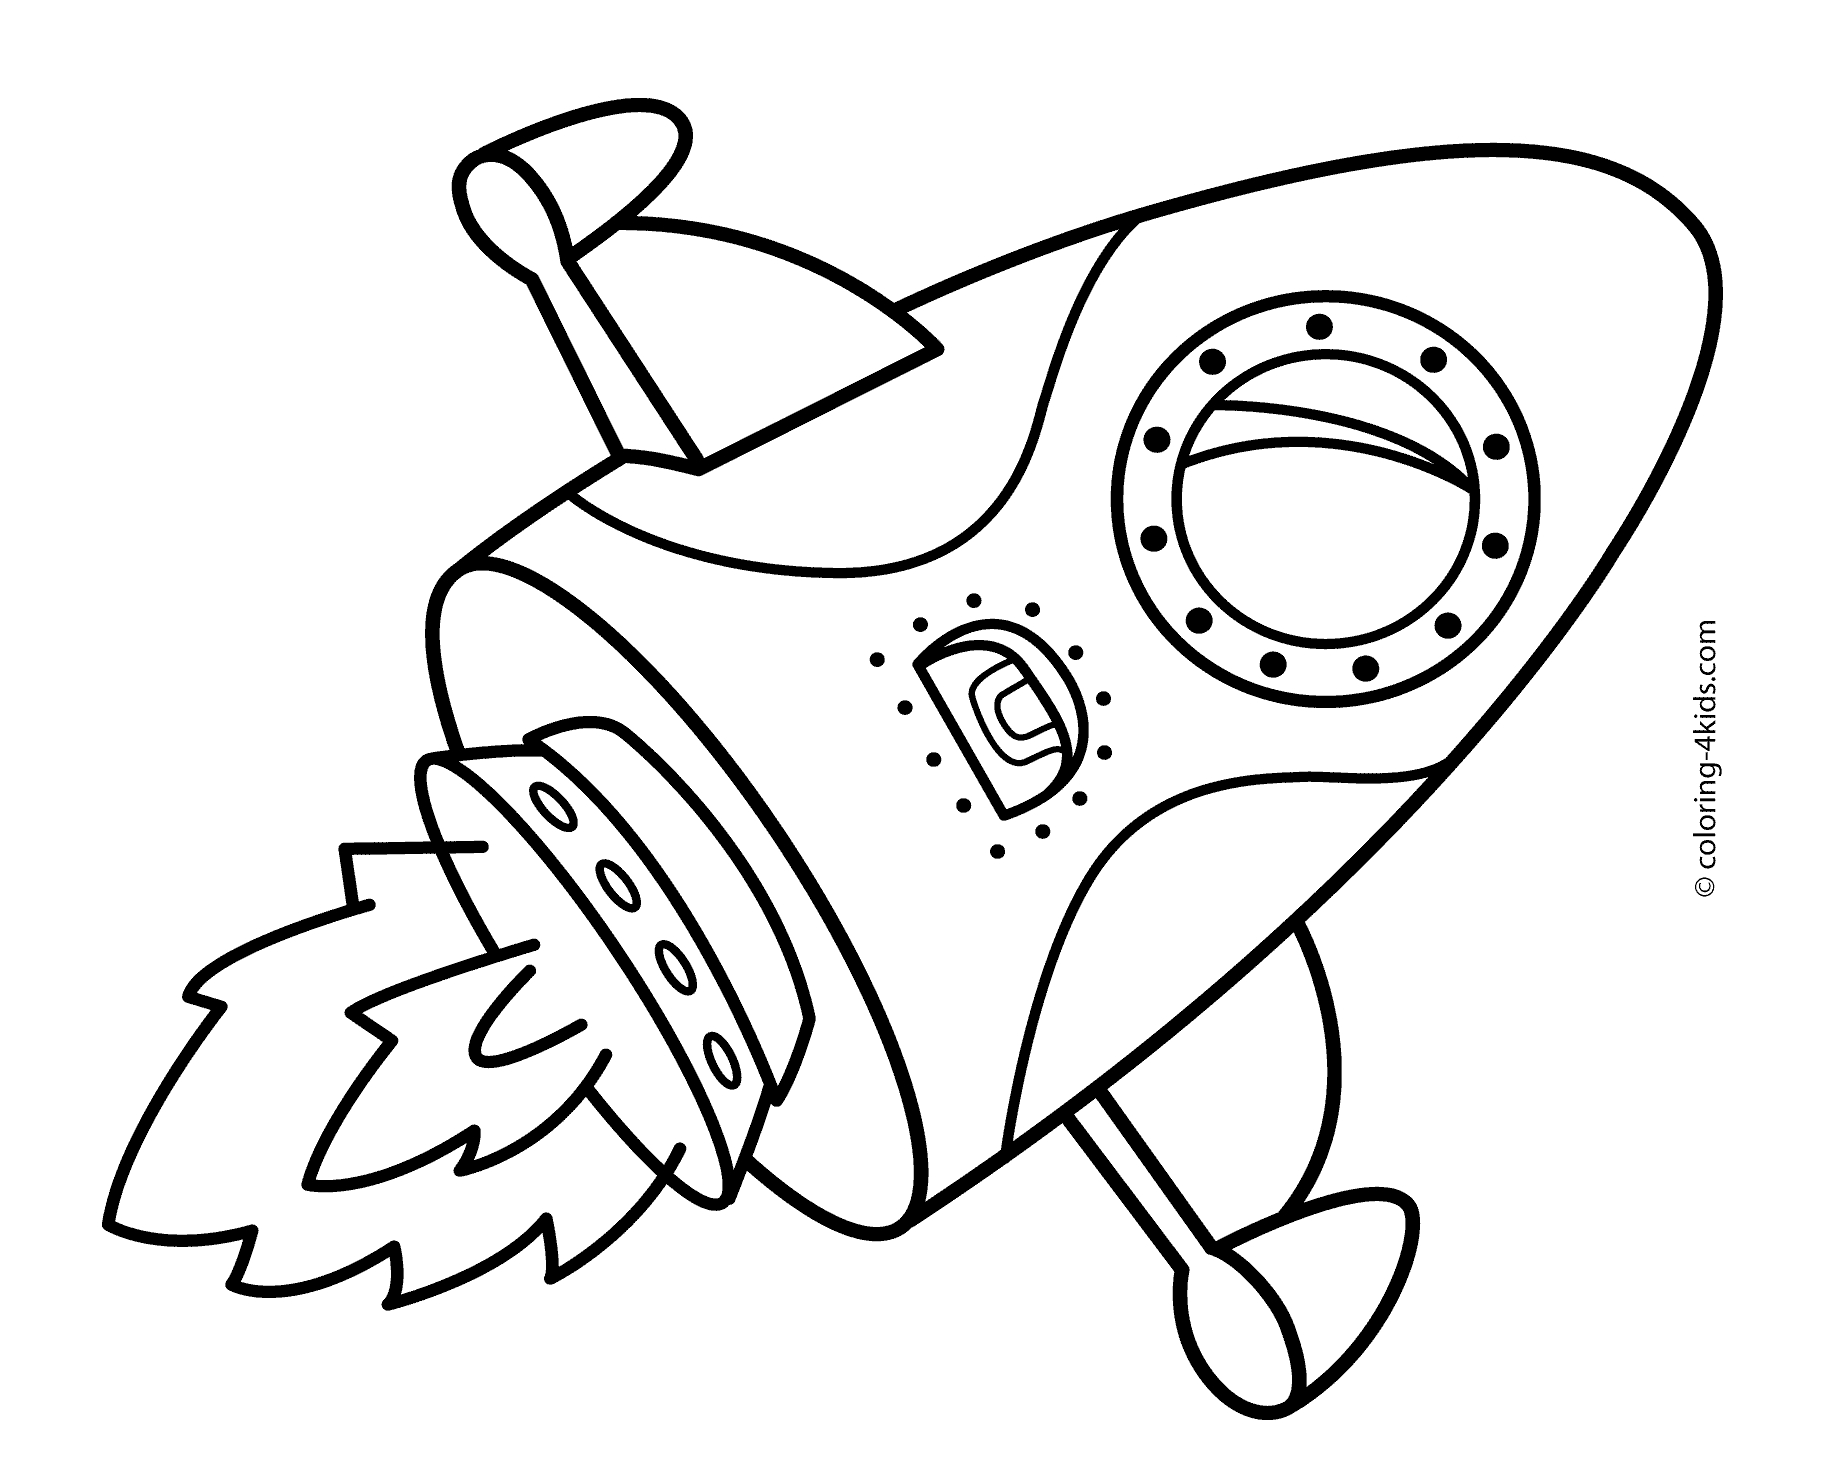 free spaceship coloring pages search results for space coloring pages on getcolorings pages free spaceship coloring